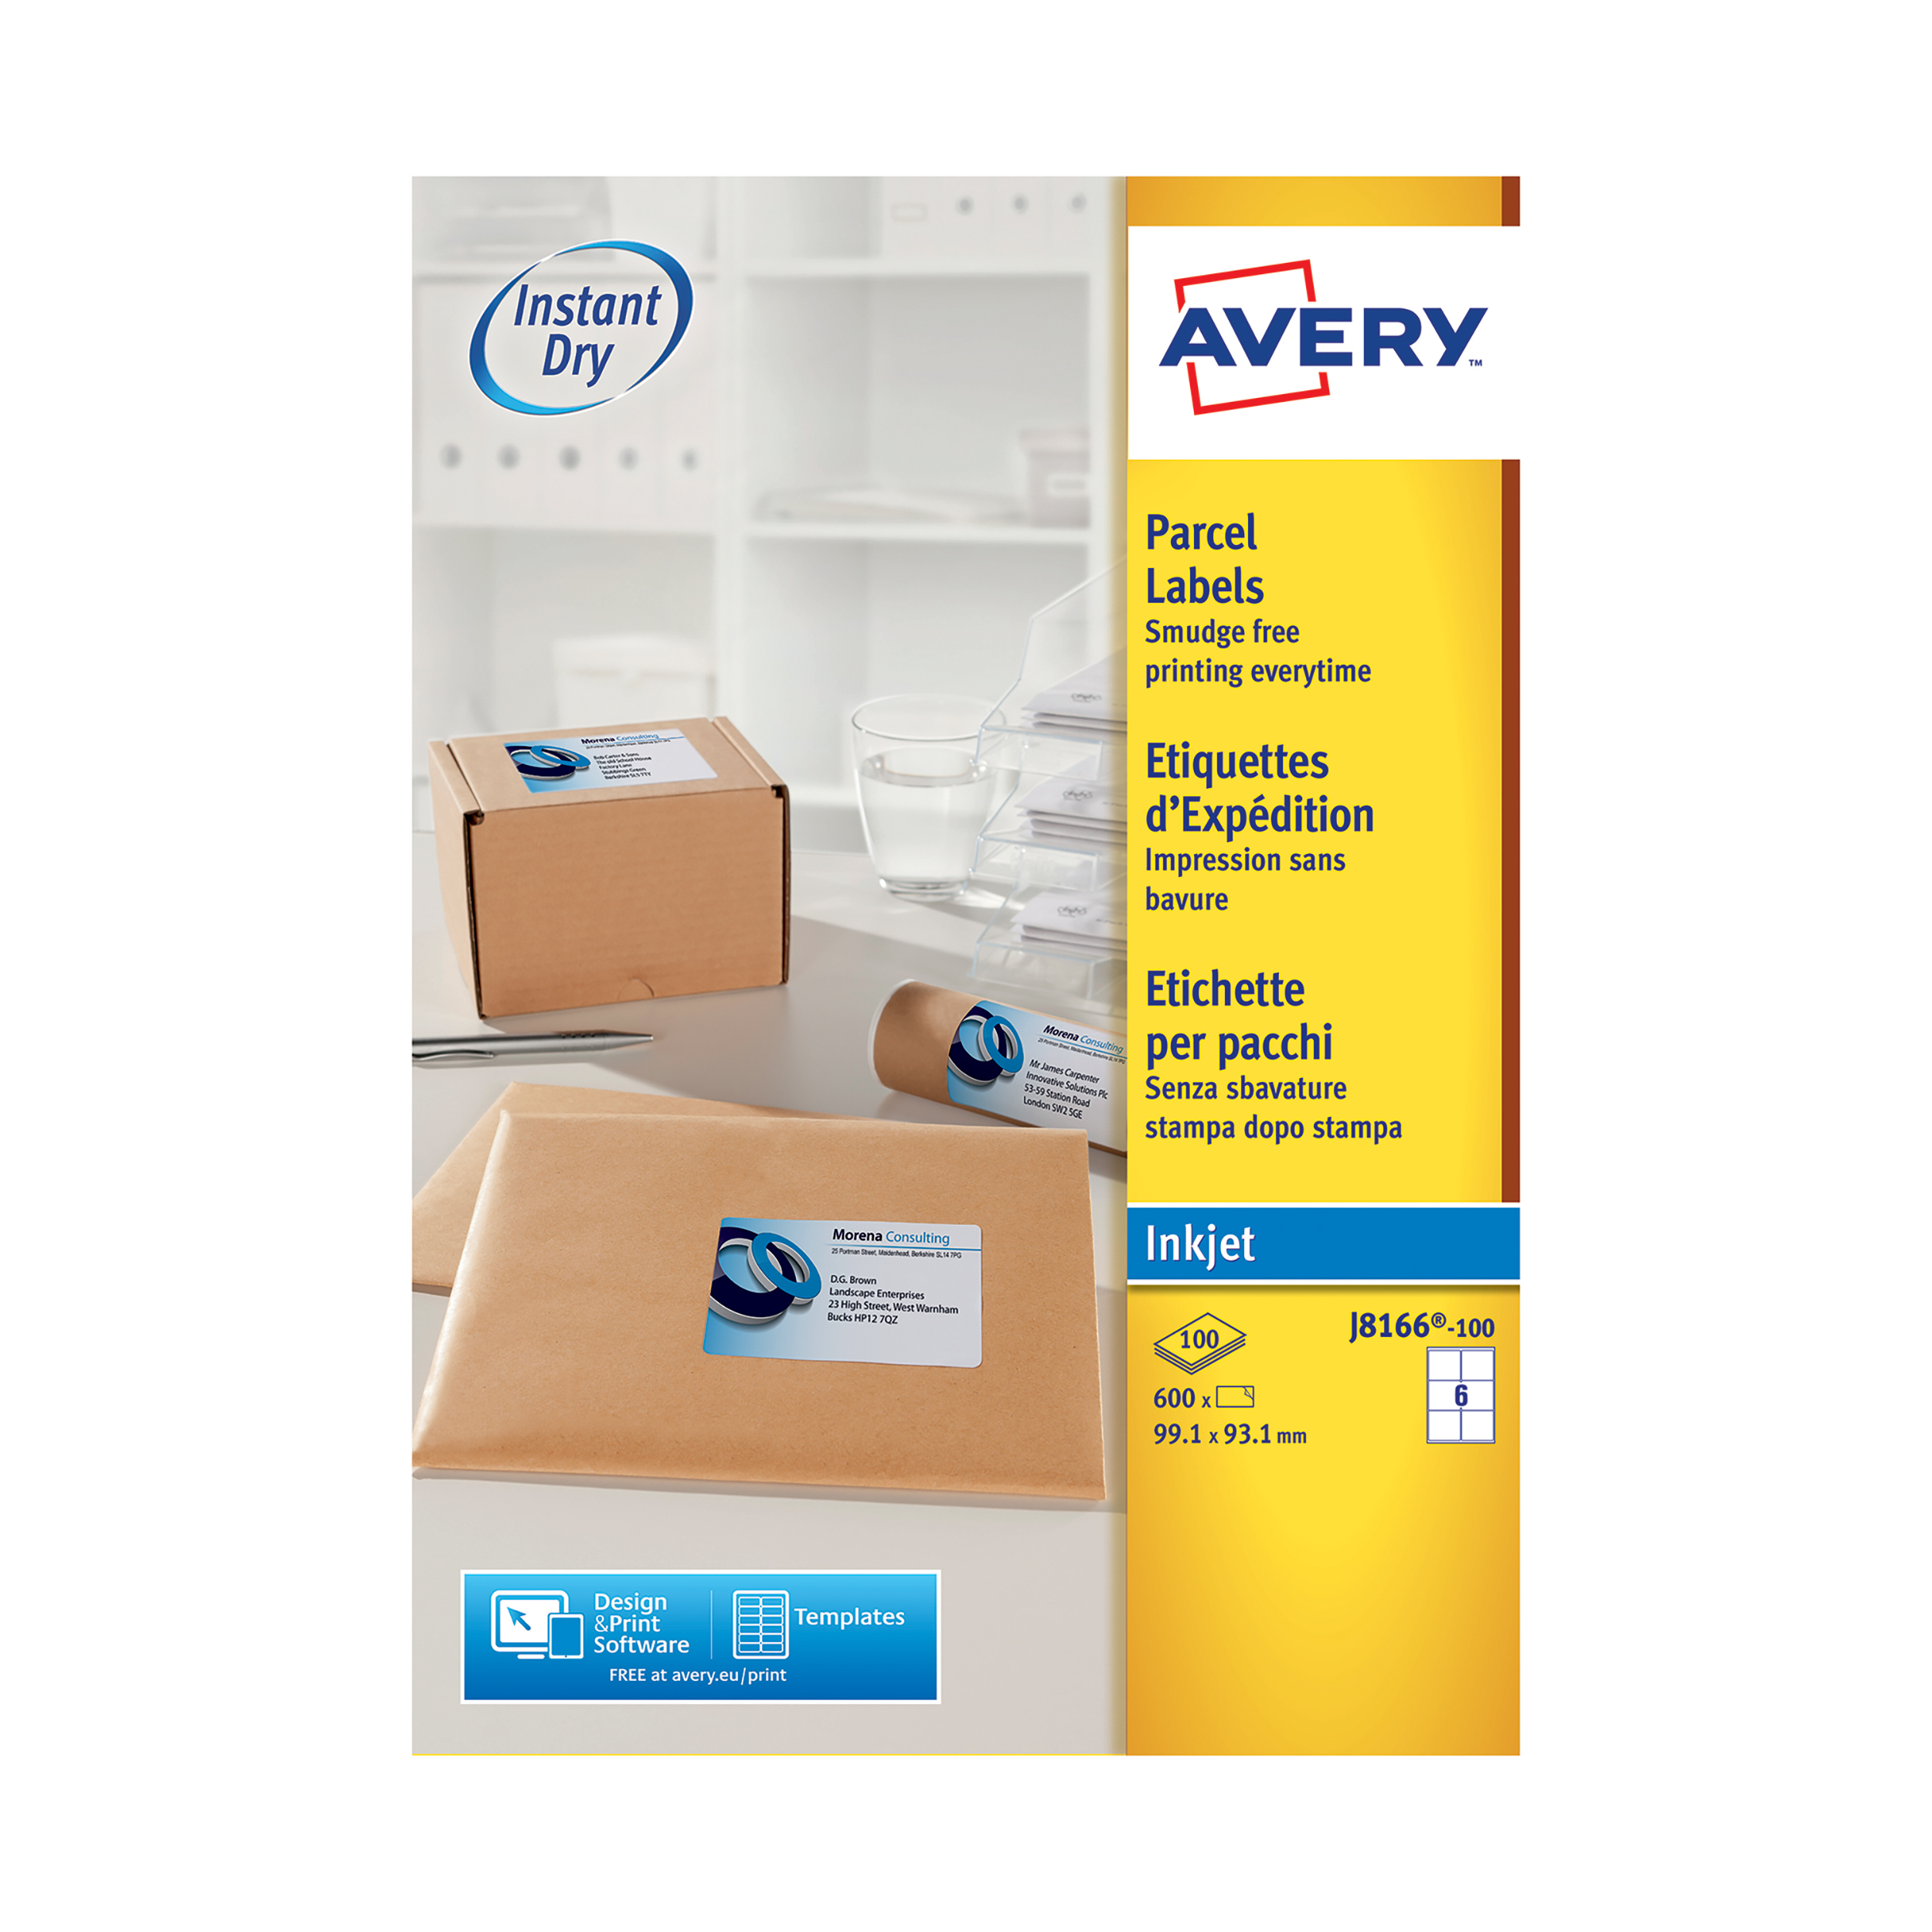 Address Avery Quick DRY Parcel Labels Inkjet 6 per Sheet 99.1x93.1mm White Ref J8166-100 600 Labels